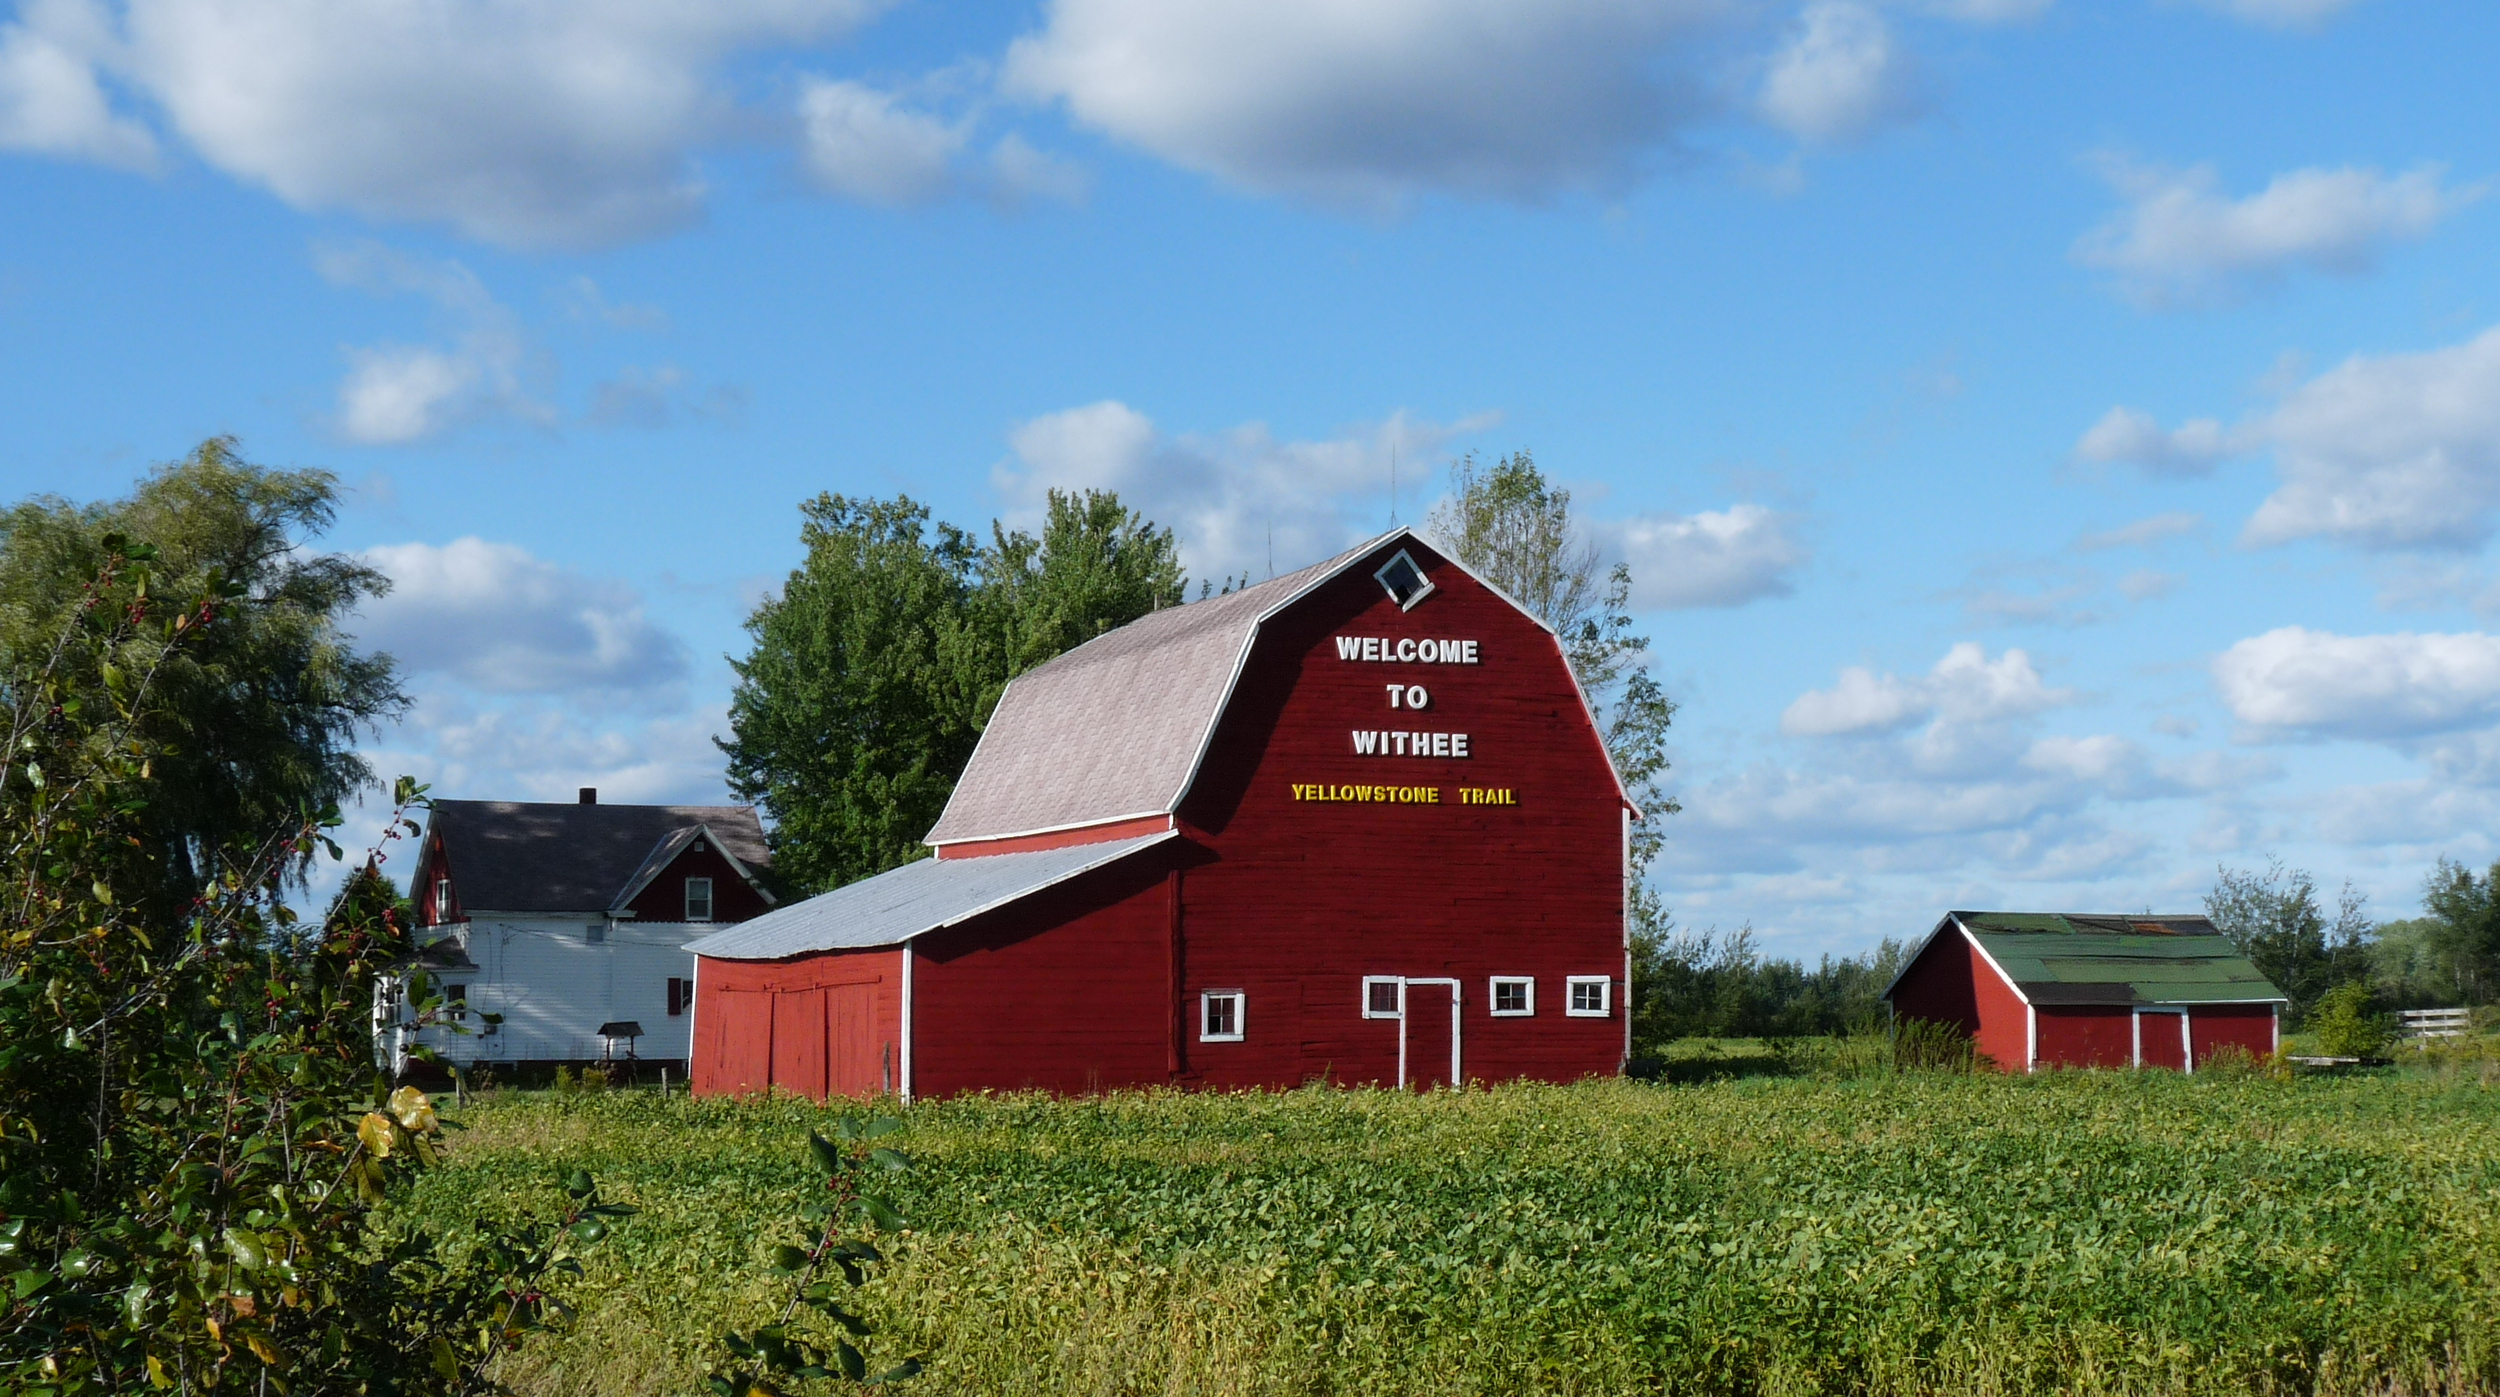 Farm_south_of_Withee_Wisconsin 1920x1080.jpg